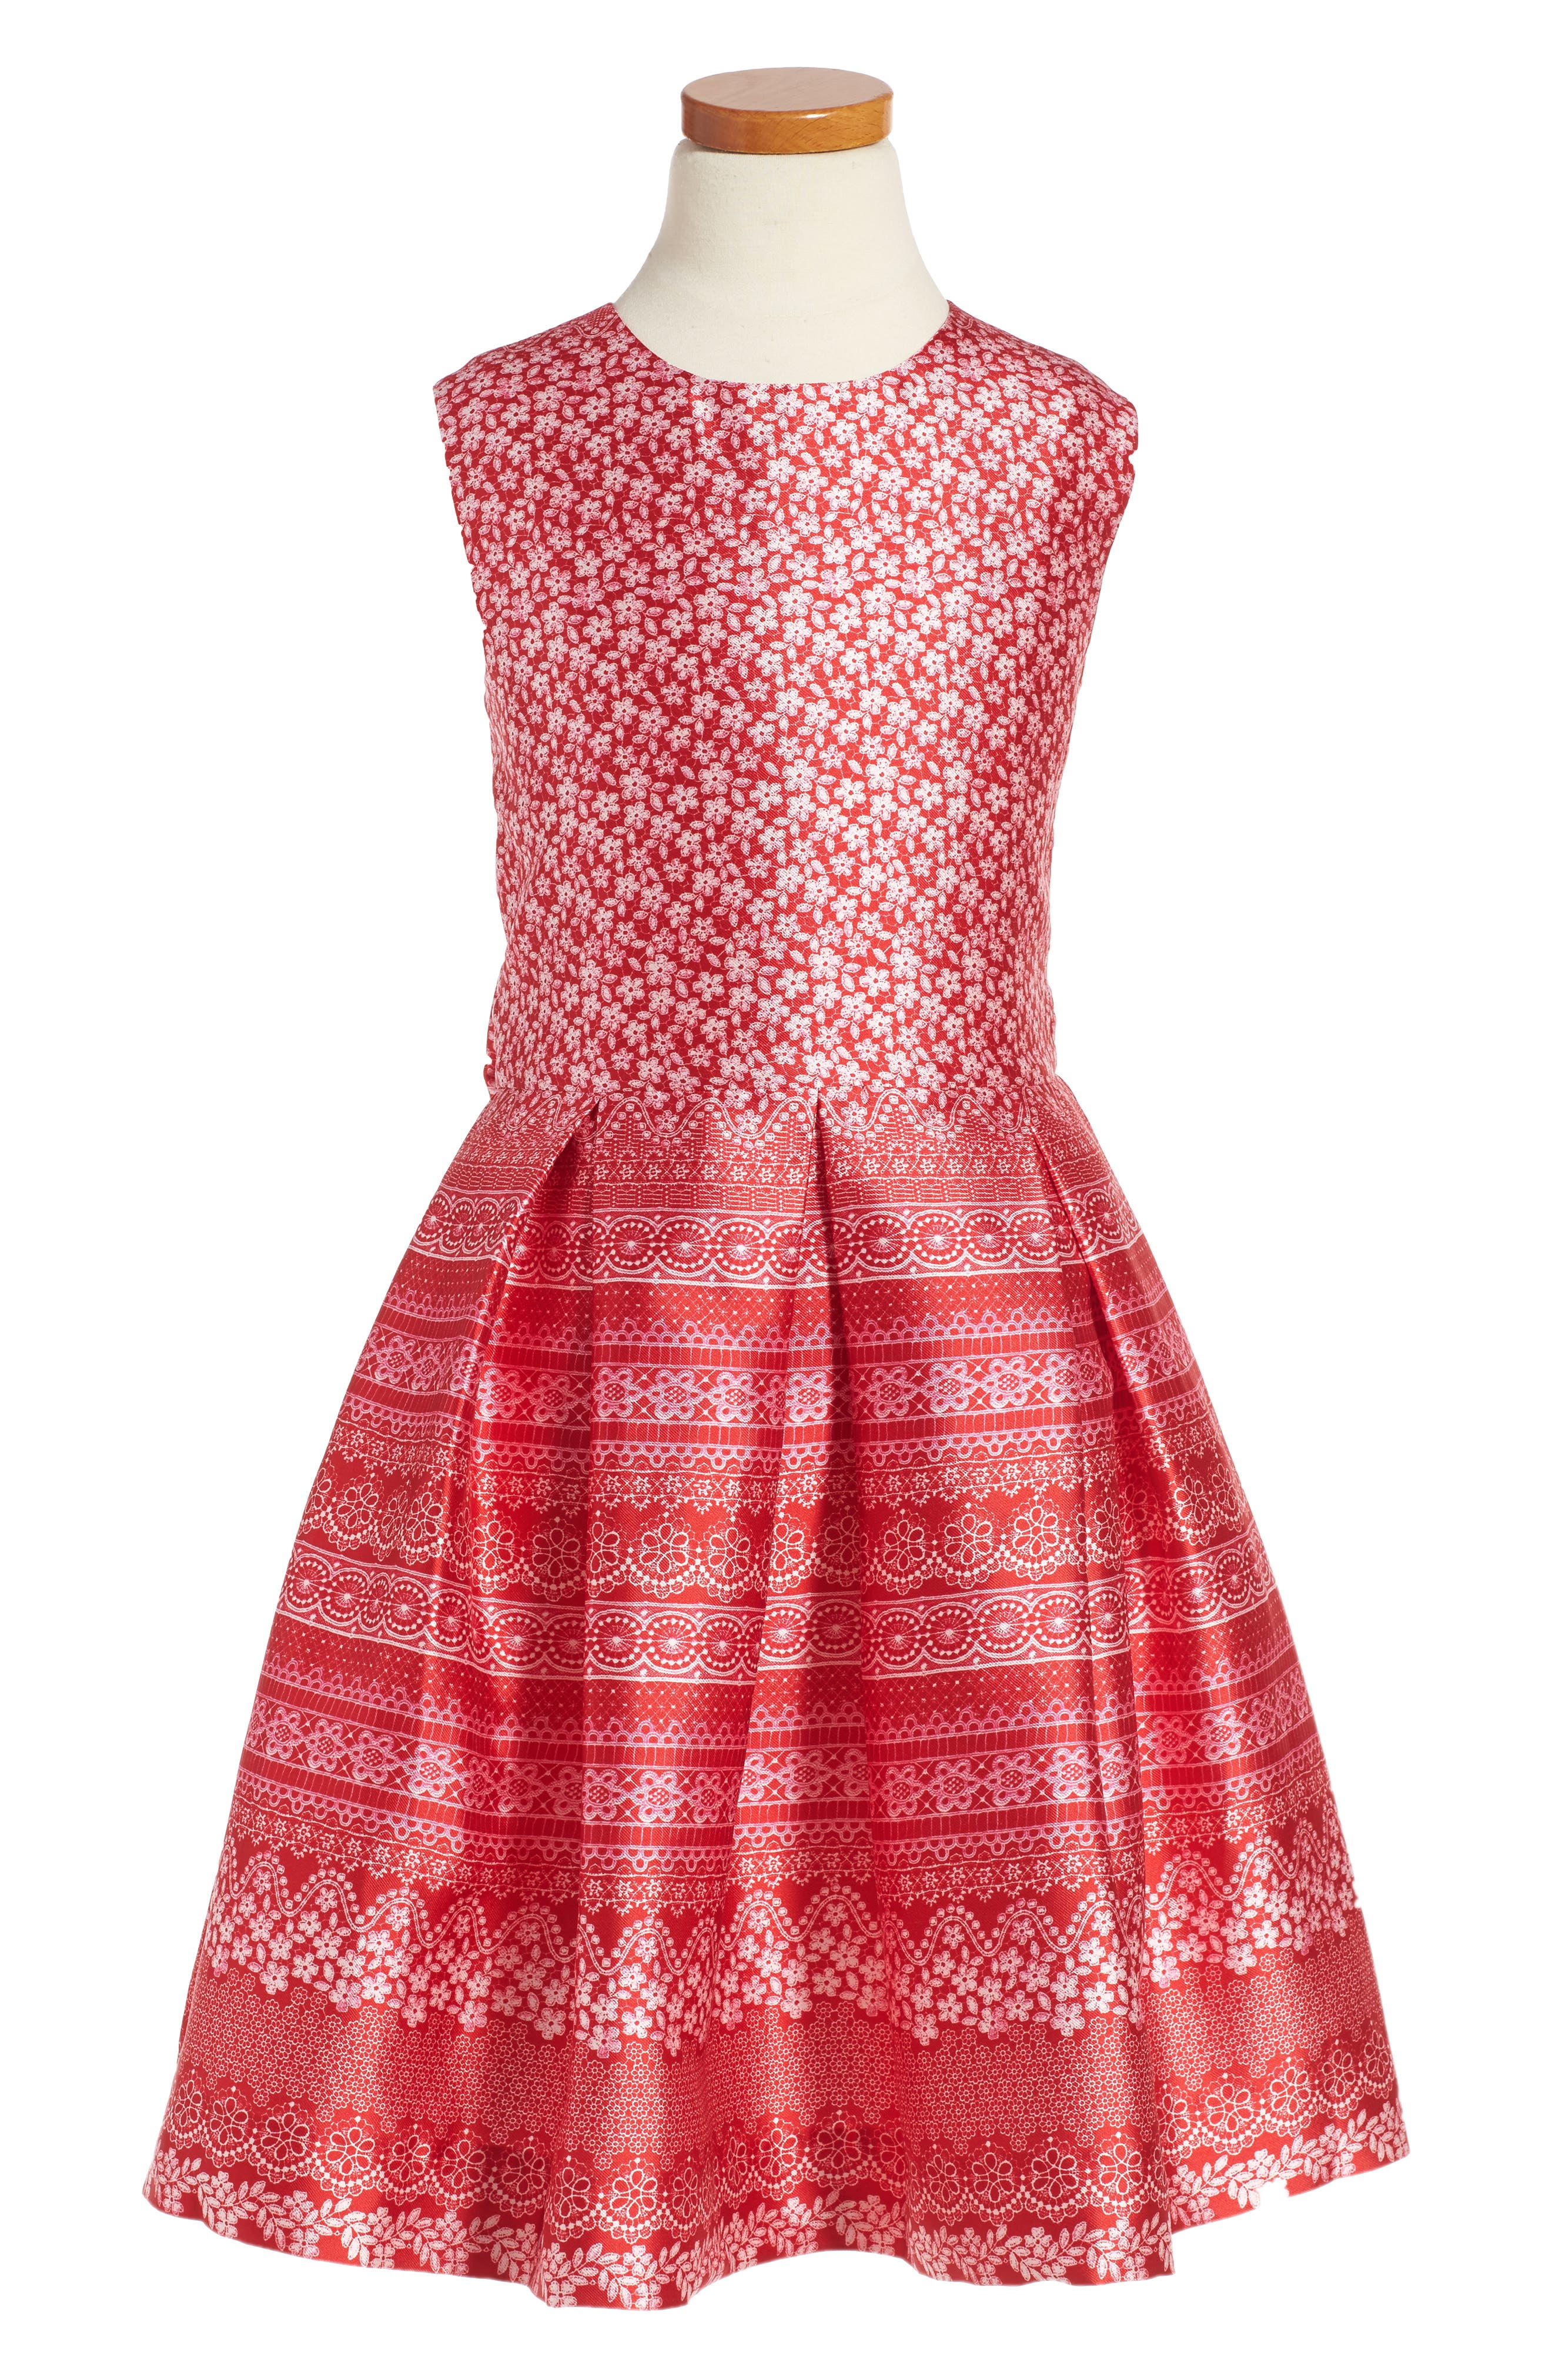 Main Image - Oscar de la Renta Lace Bands Mikado Party Dress (Big Girls)